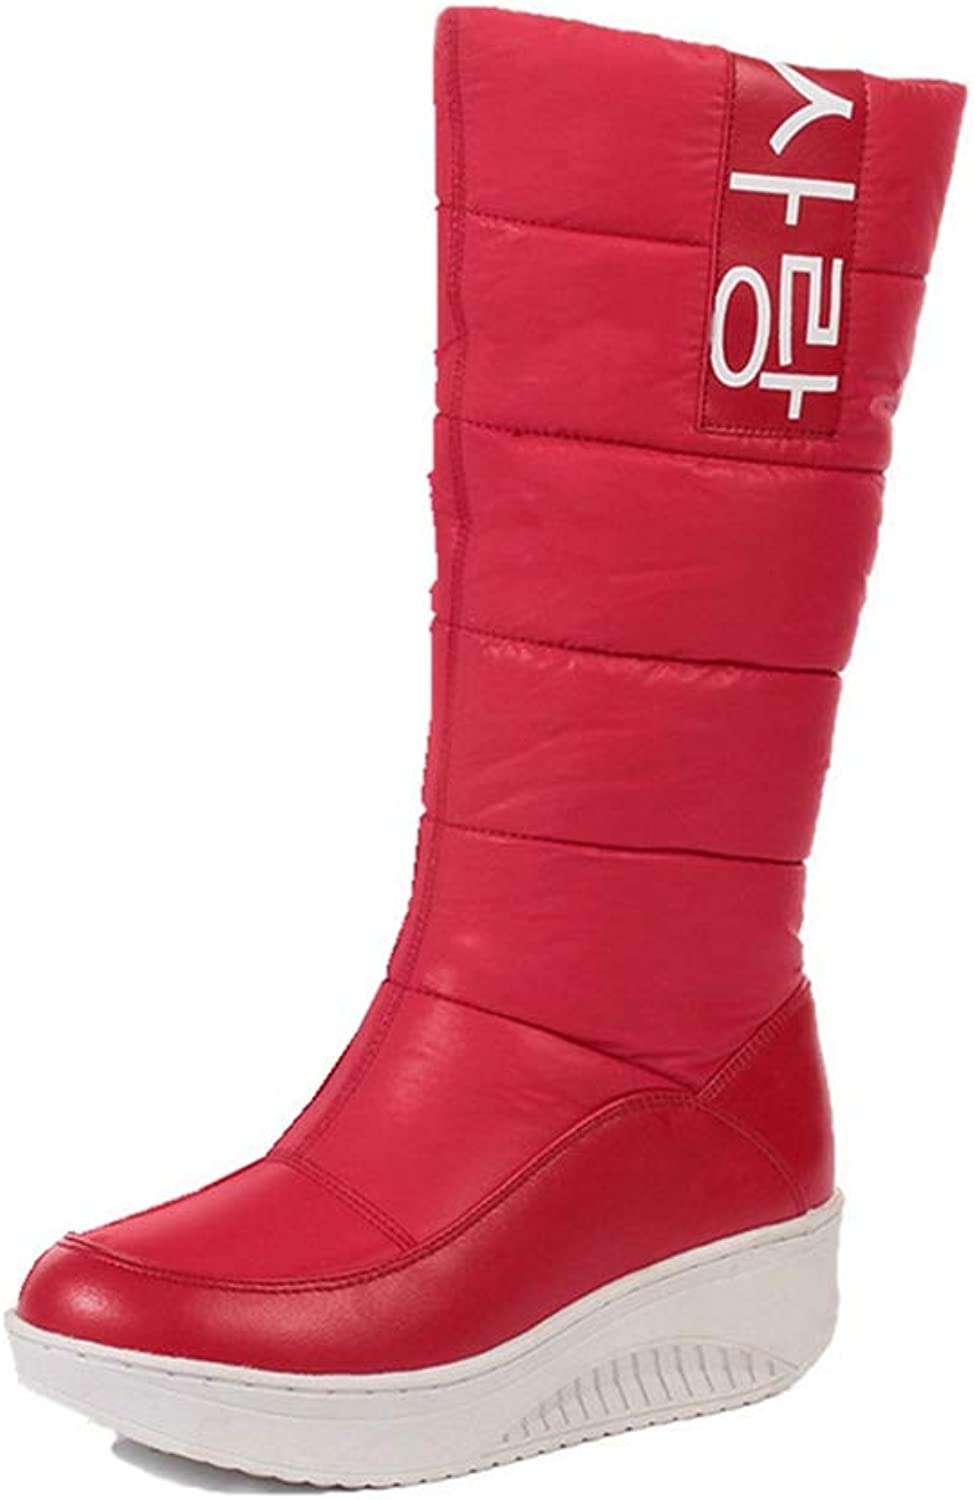 T-JULY Women's Ladies Snow Boots Wedges Heels Slip on Winter Boots Fur Inside Mid Calf Boots Sweet shoes Size 35-44